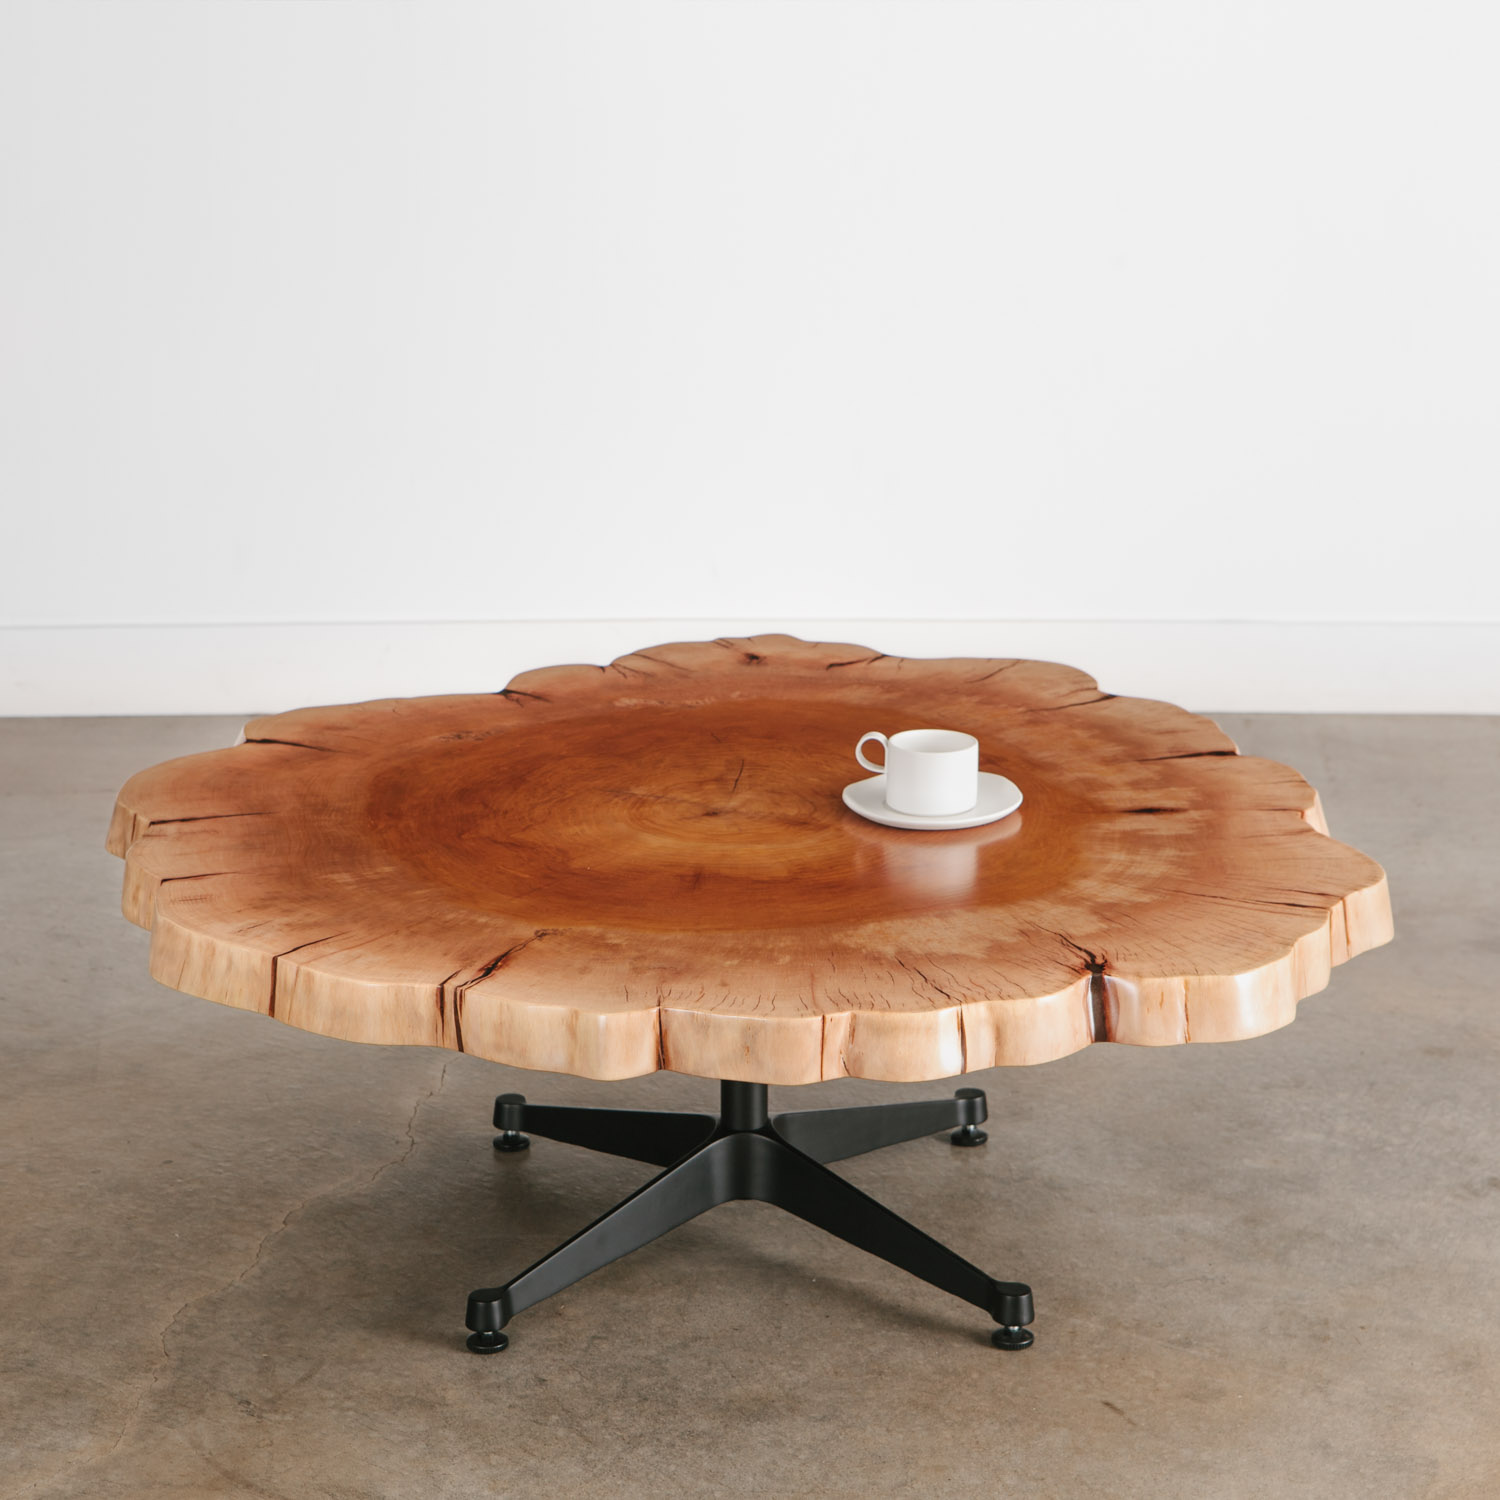 Picture of: Sycamore Coffee Table No 240 Elko Hardwoods Modern Live Edge Furniture Dining Coffee Tables Desks Benches